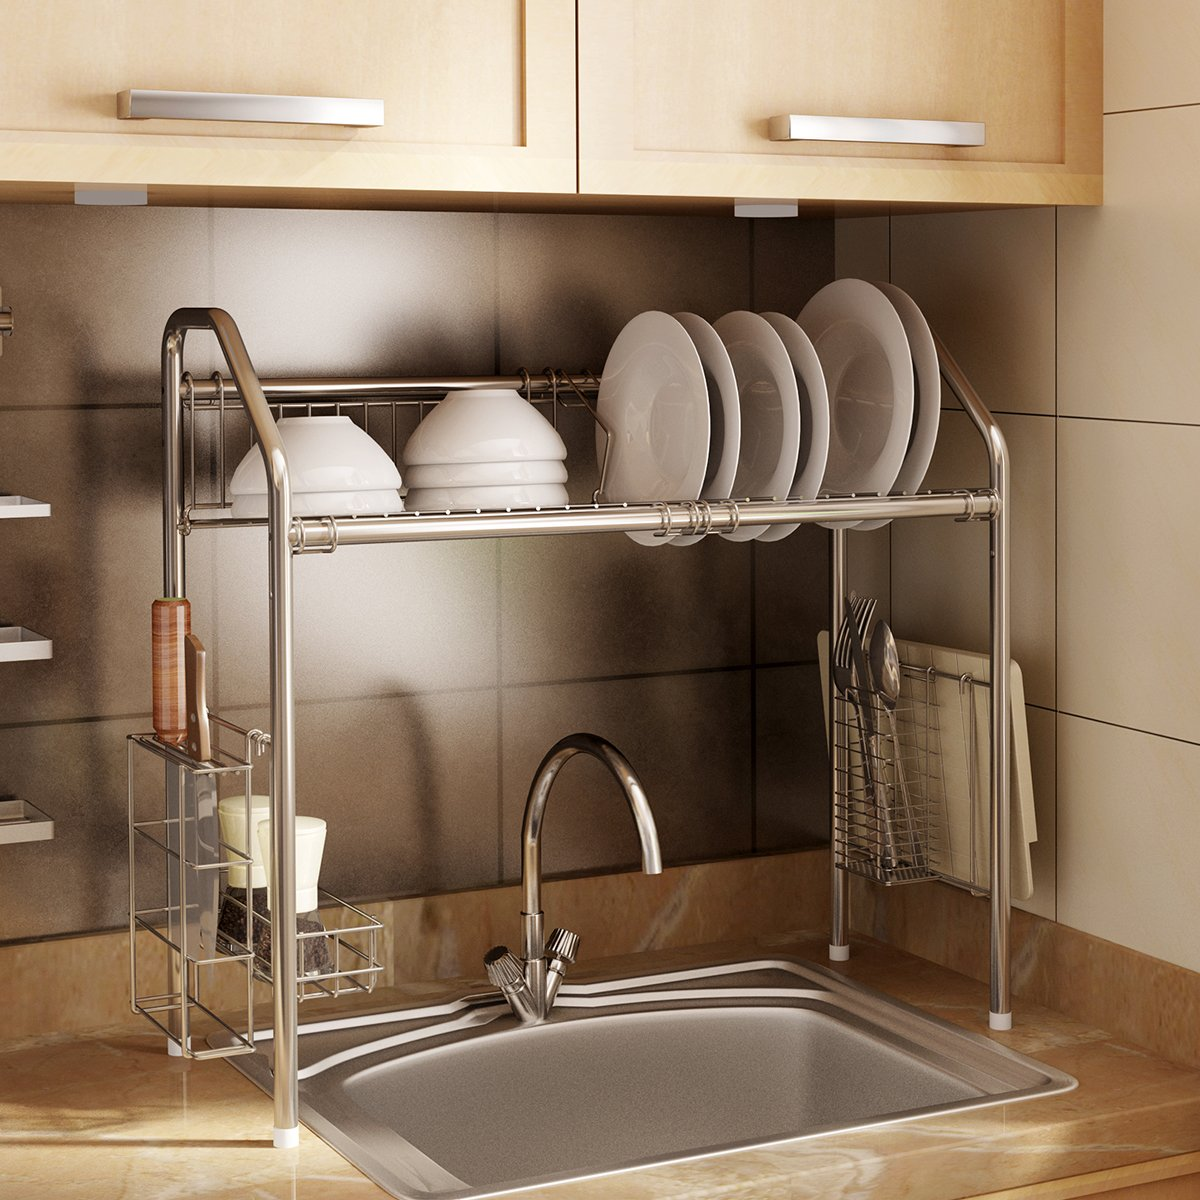 Chrome Kitchen Sink Shelf